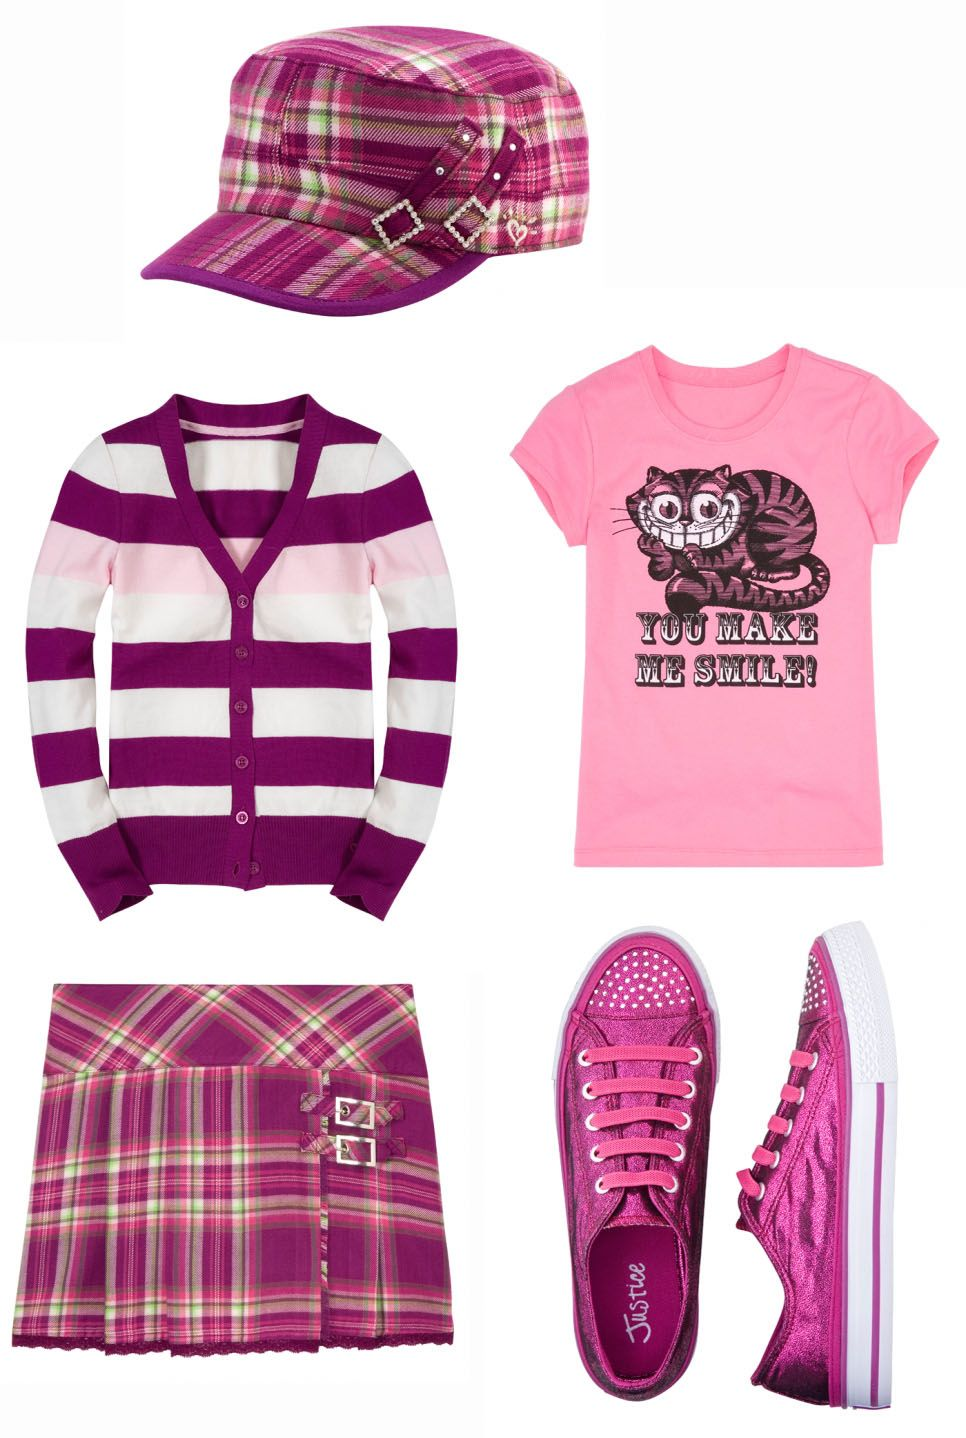 Cute outfit for daughter. - Cute Outfit For Daughter... Kids Fashions Pinterest Justice